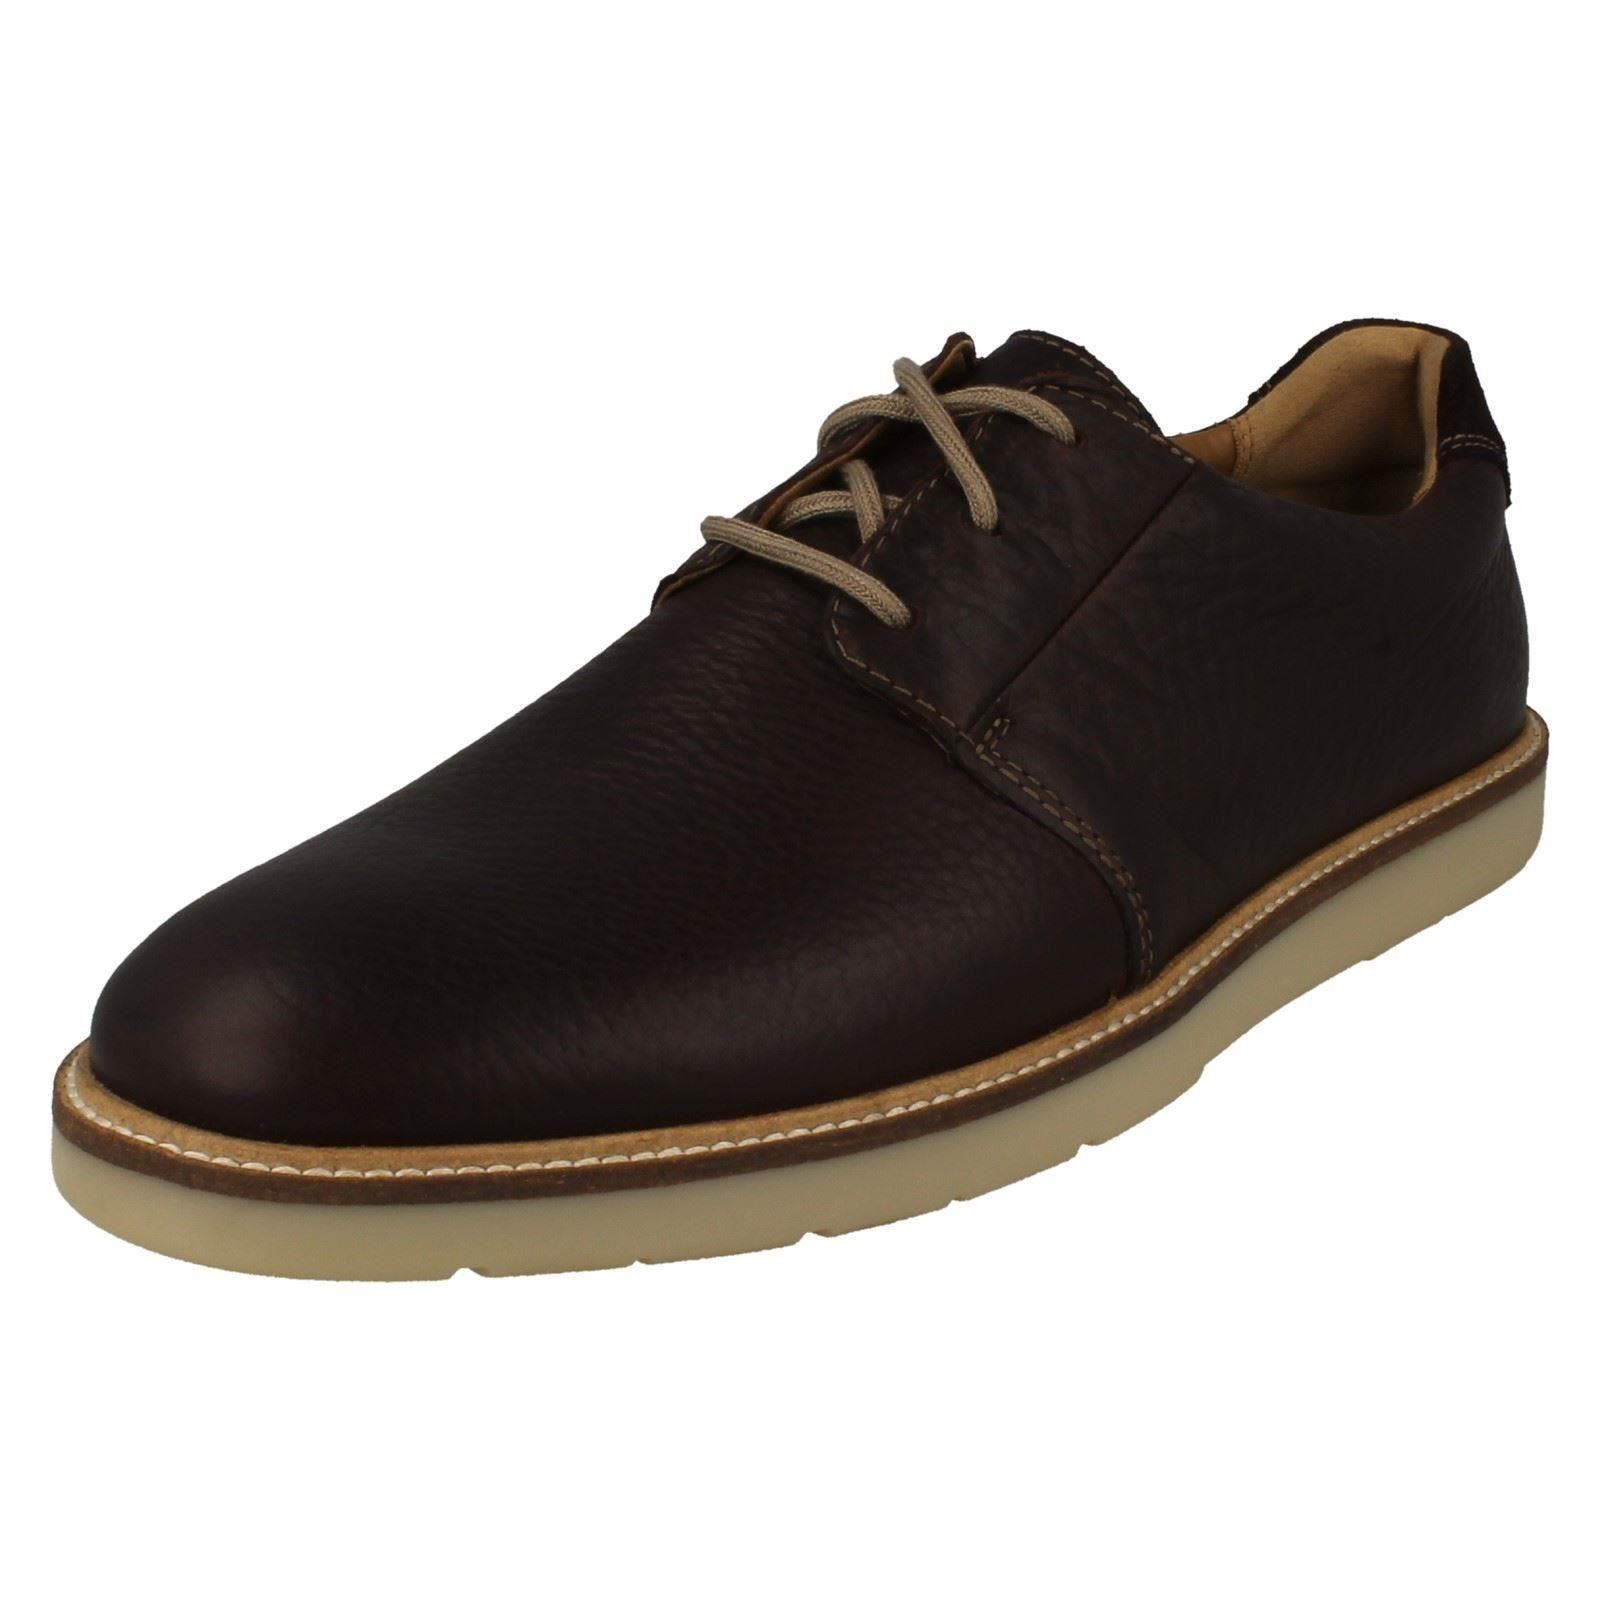 Mens Clarks Grandin Plain Dark Brown Leather Casual Lace Up shoes